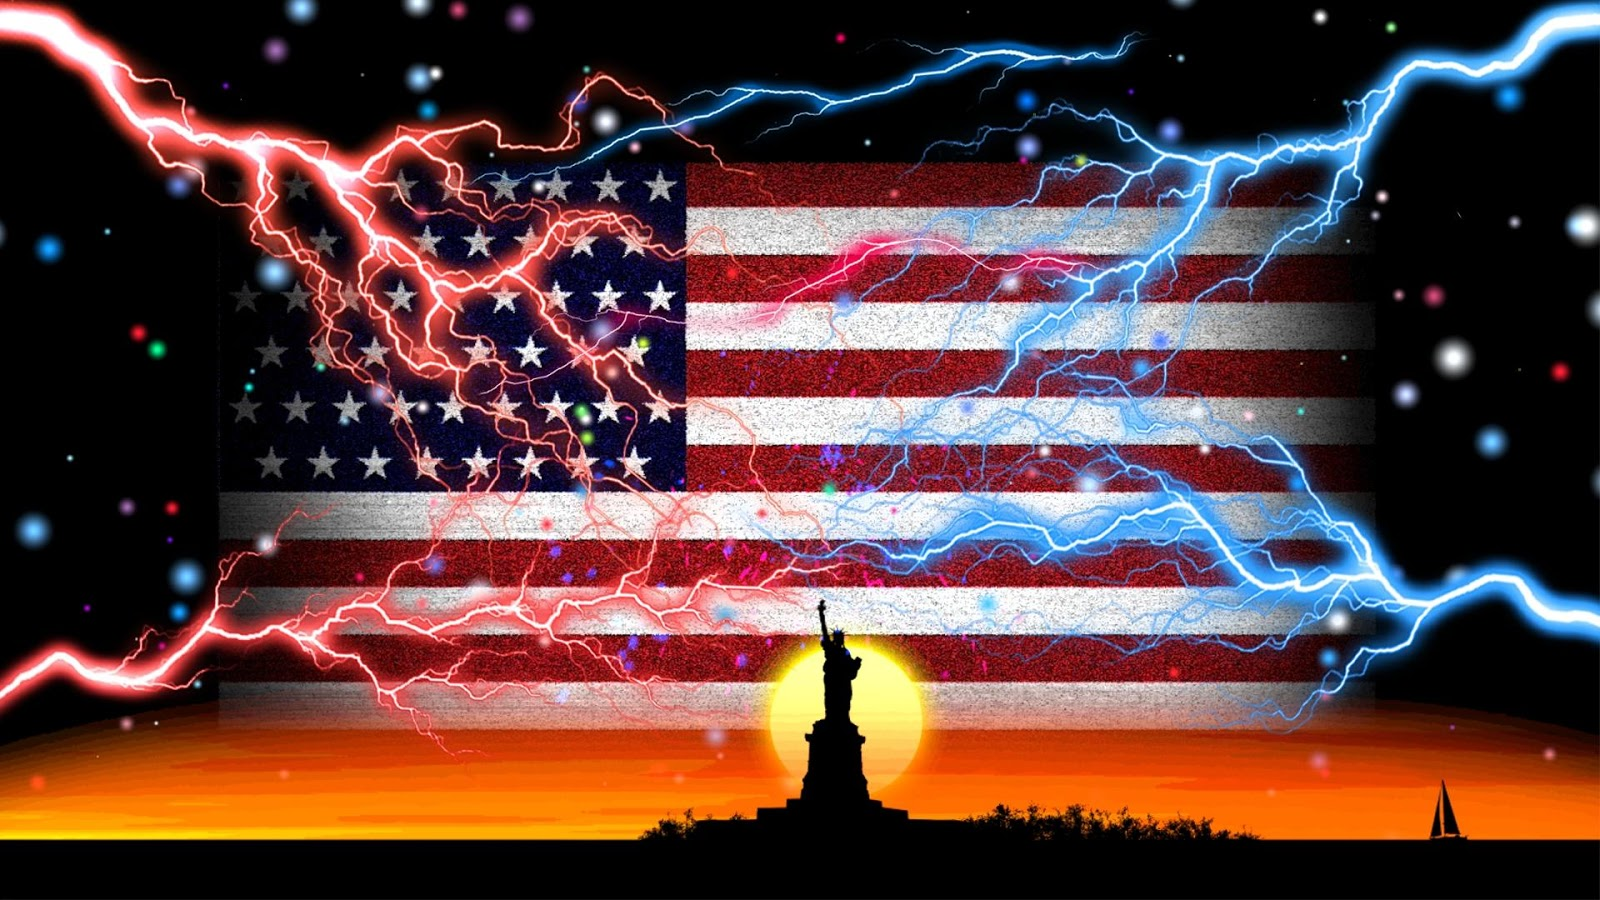 Live Wallpaper USA Flag   Android Apps on Google Play 1600x900